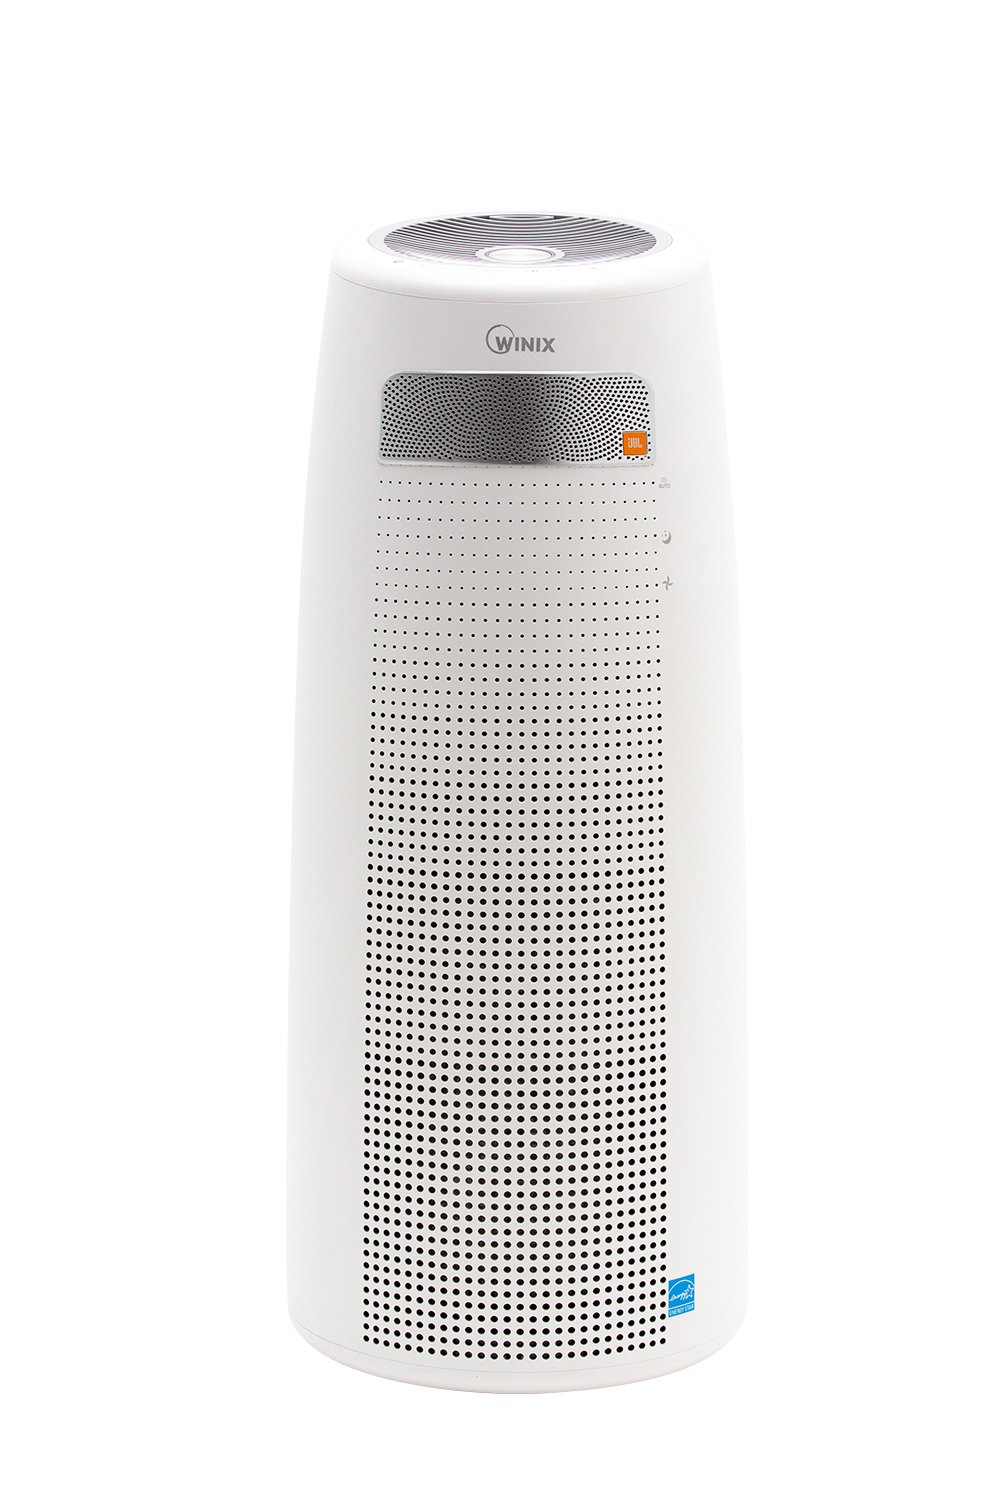 Envion Therapure TPP50 Desk Air Purifier – Comparison Air Purifiers Price for Small Rooms